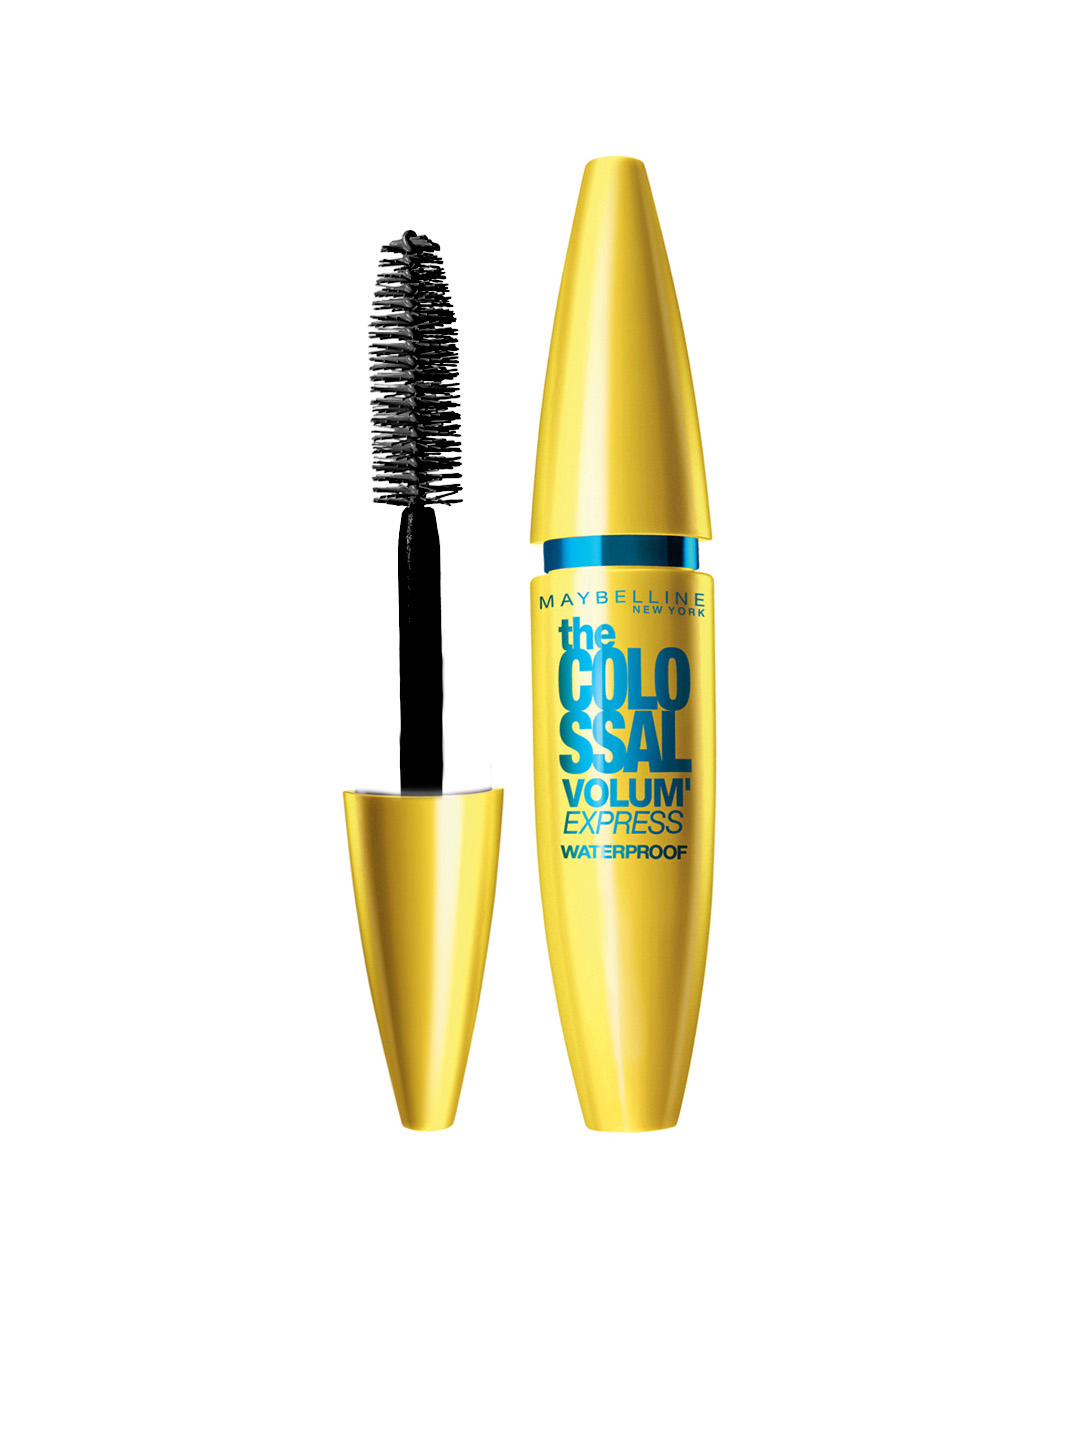 Maybelline Colossal Volume Express Waterproof  Mascara